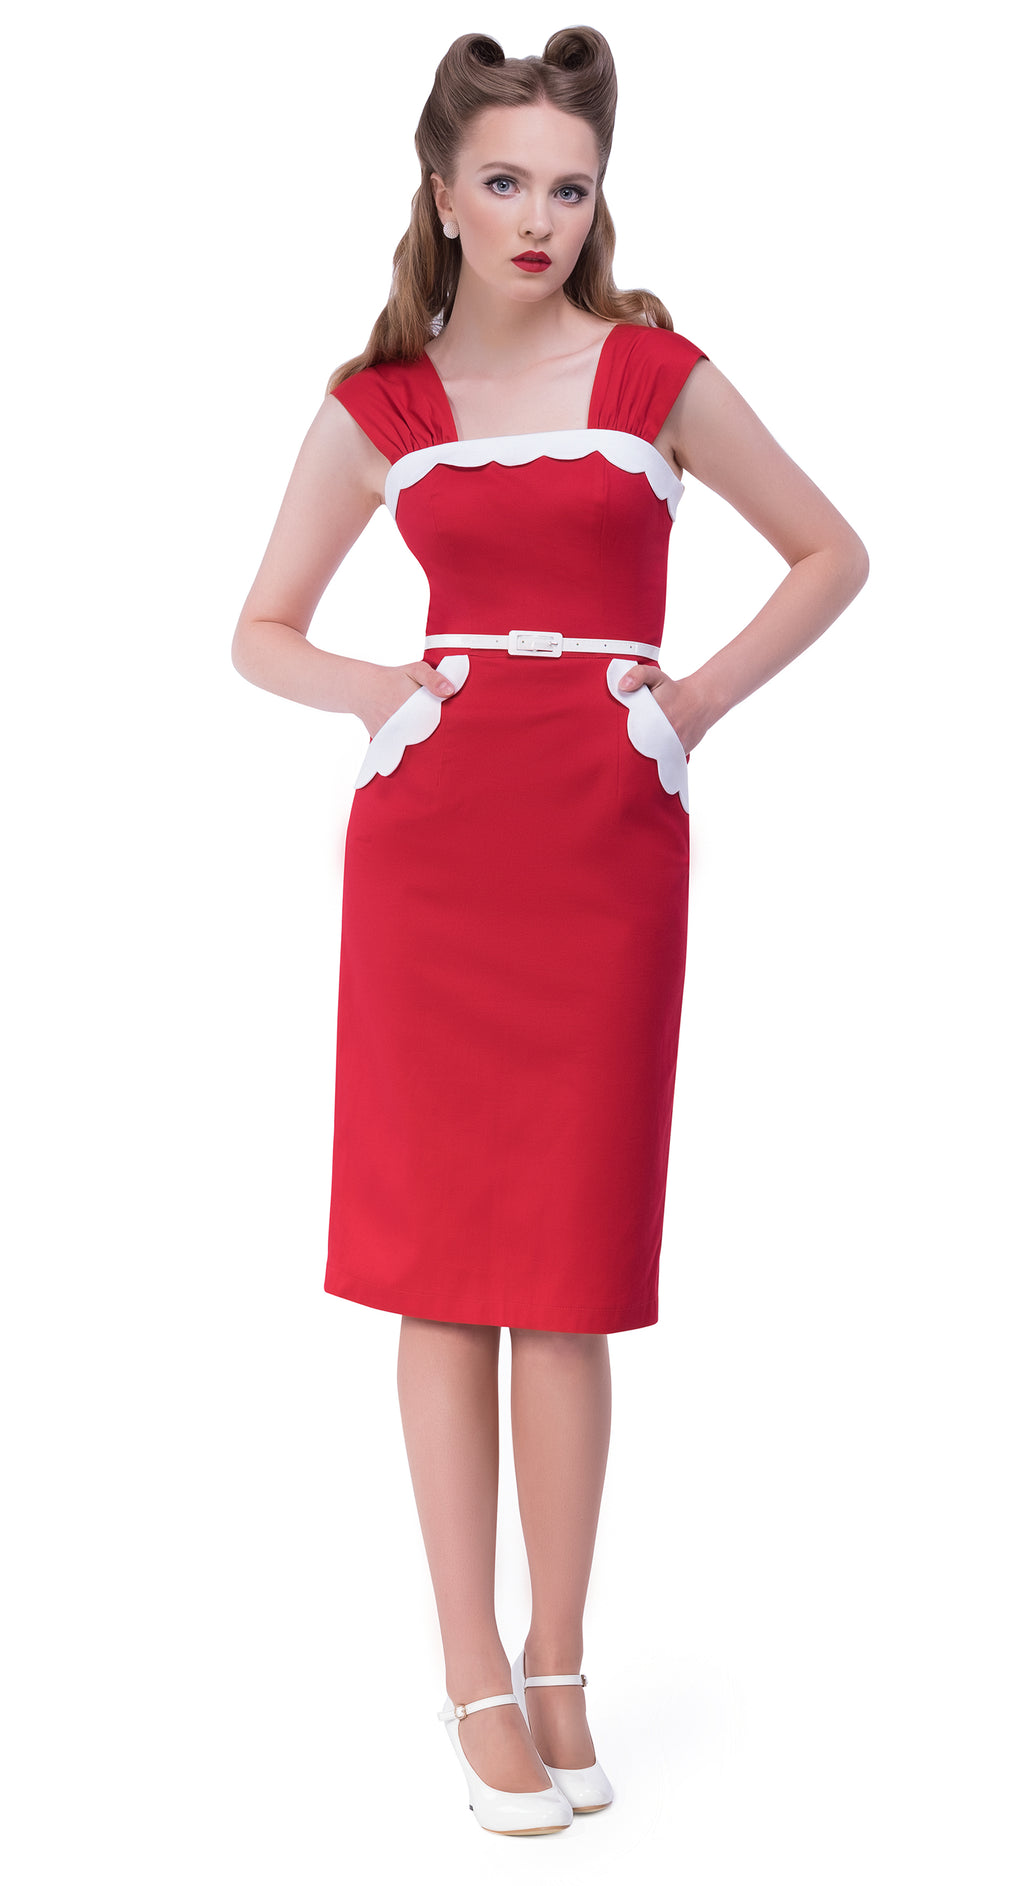 This red rockabilly fifties style Italian cotton full length dress from the first season of Magdalena's Main Squeeze label provides a fitted bodice with a full length pencil skirt incorporating impacting detail by way of a darling white scallop top and pockets. Thick bunched shoulder straps and white faux leather belt finish the look.